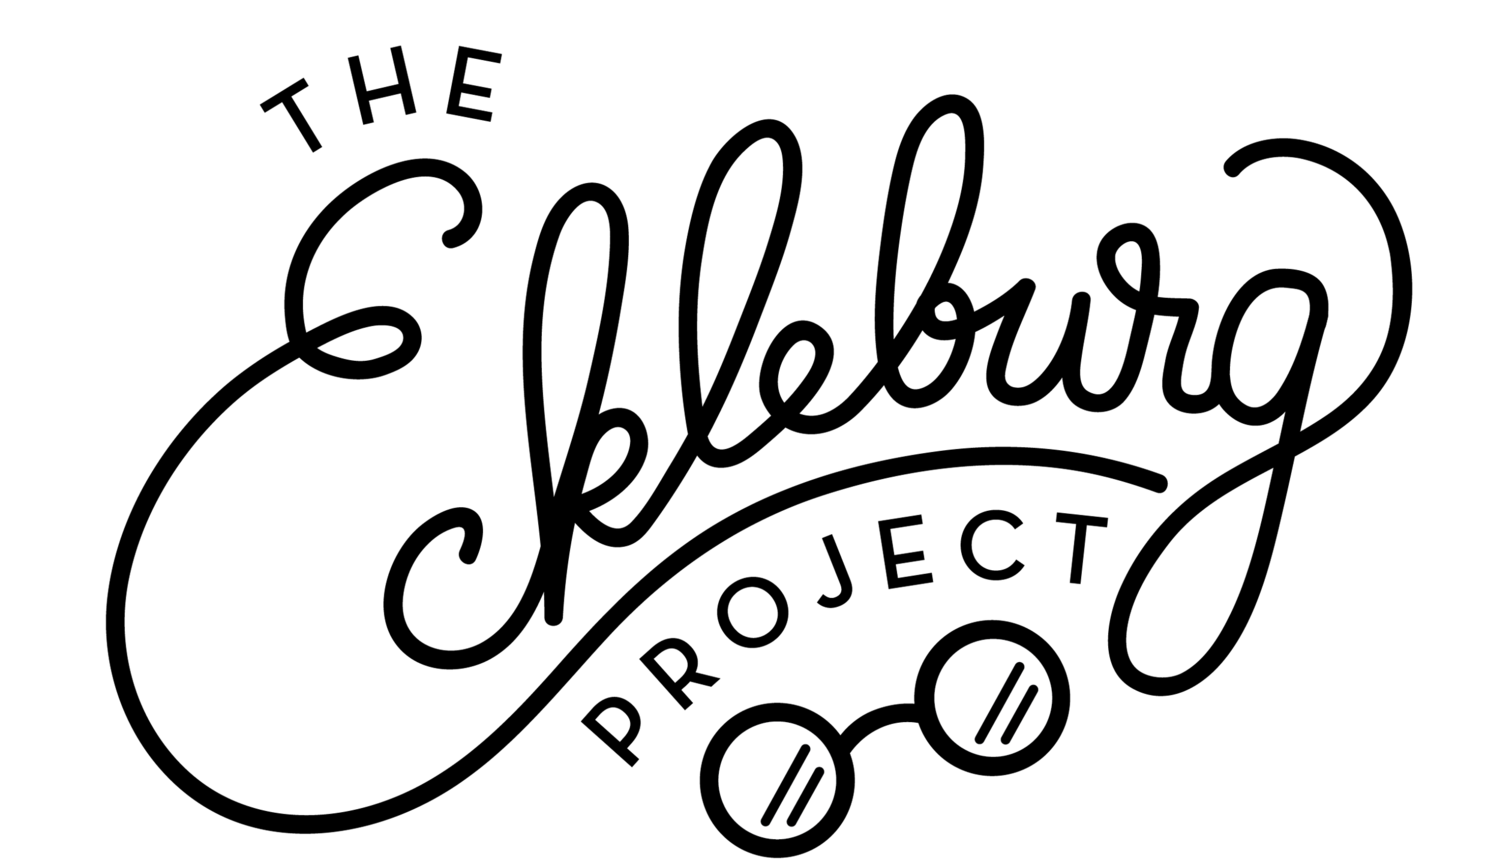 The Eckleburg Project